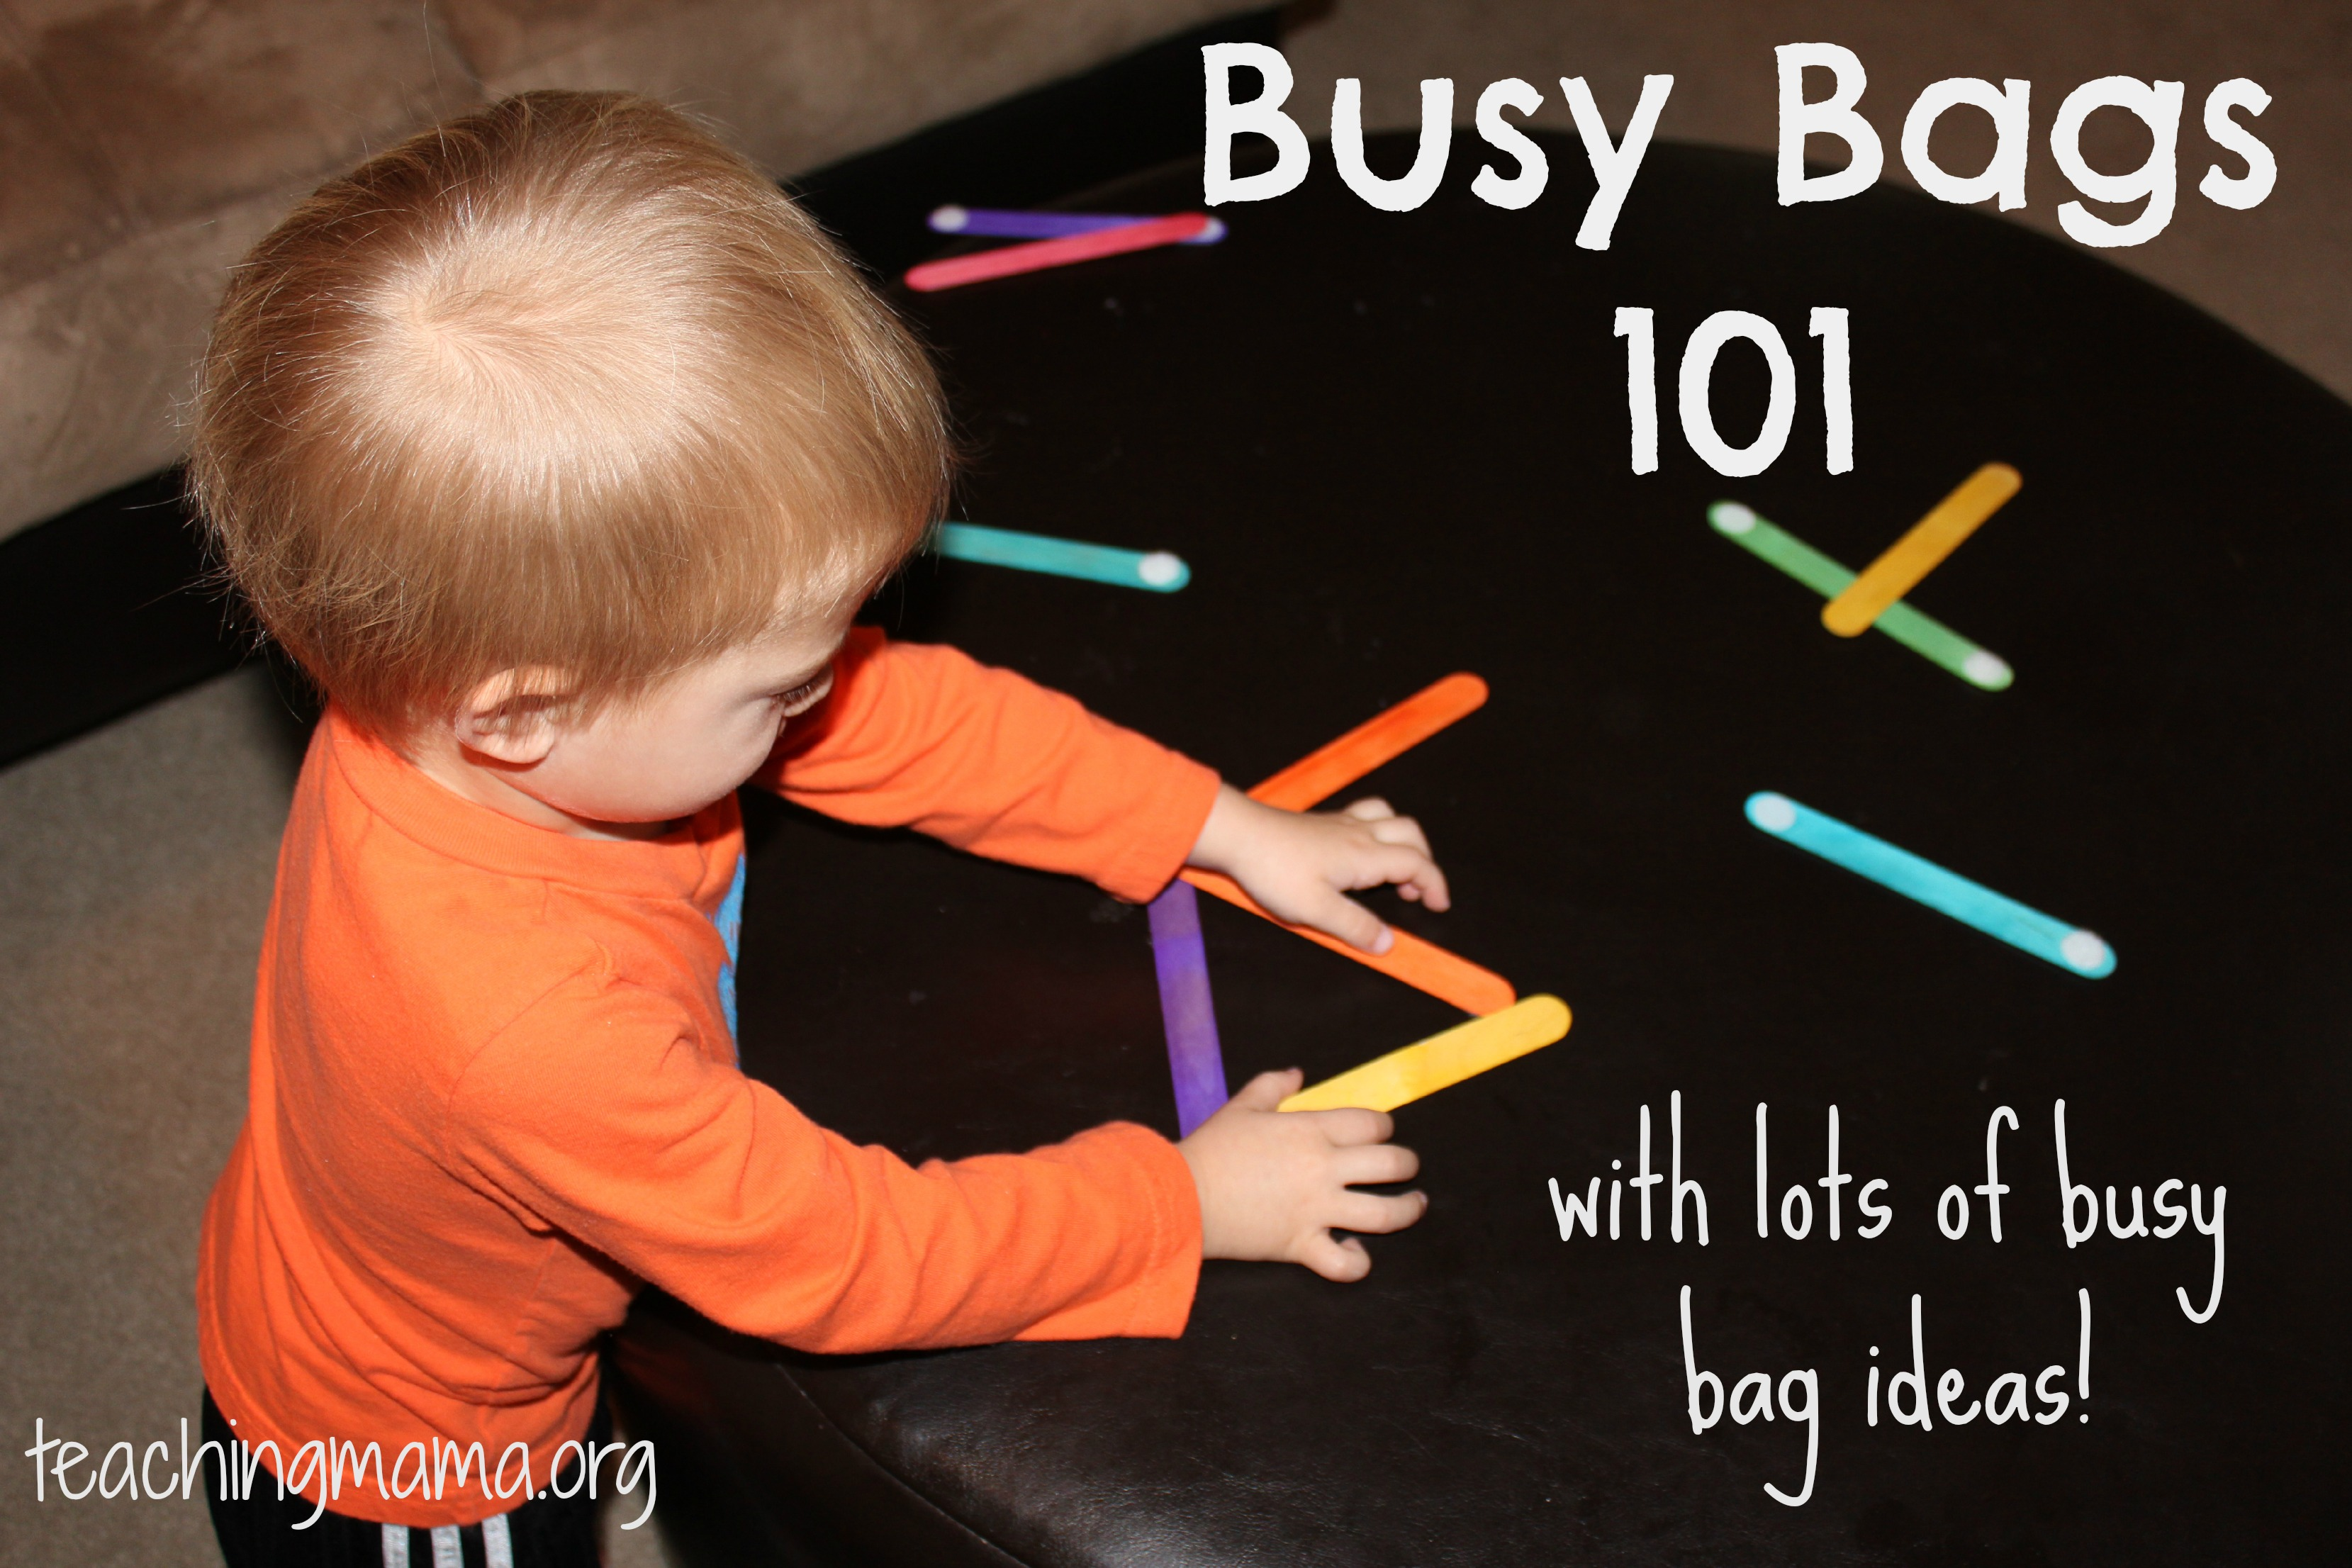 Discussion on this topic: 5 Swaps to Make Your Kids Bag , 5-swaps-to-make-your-kids-bag/